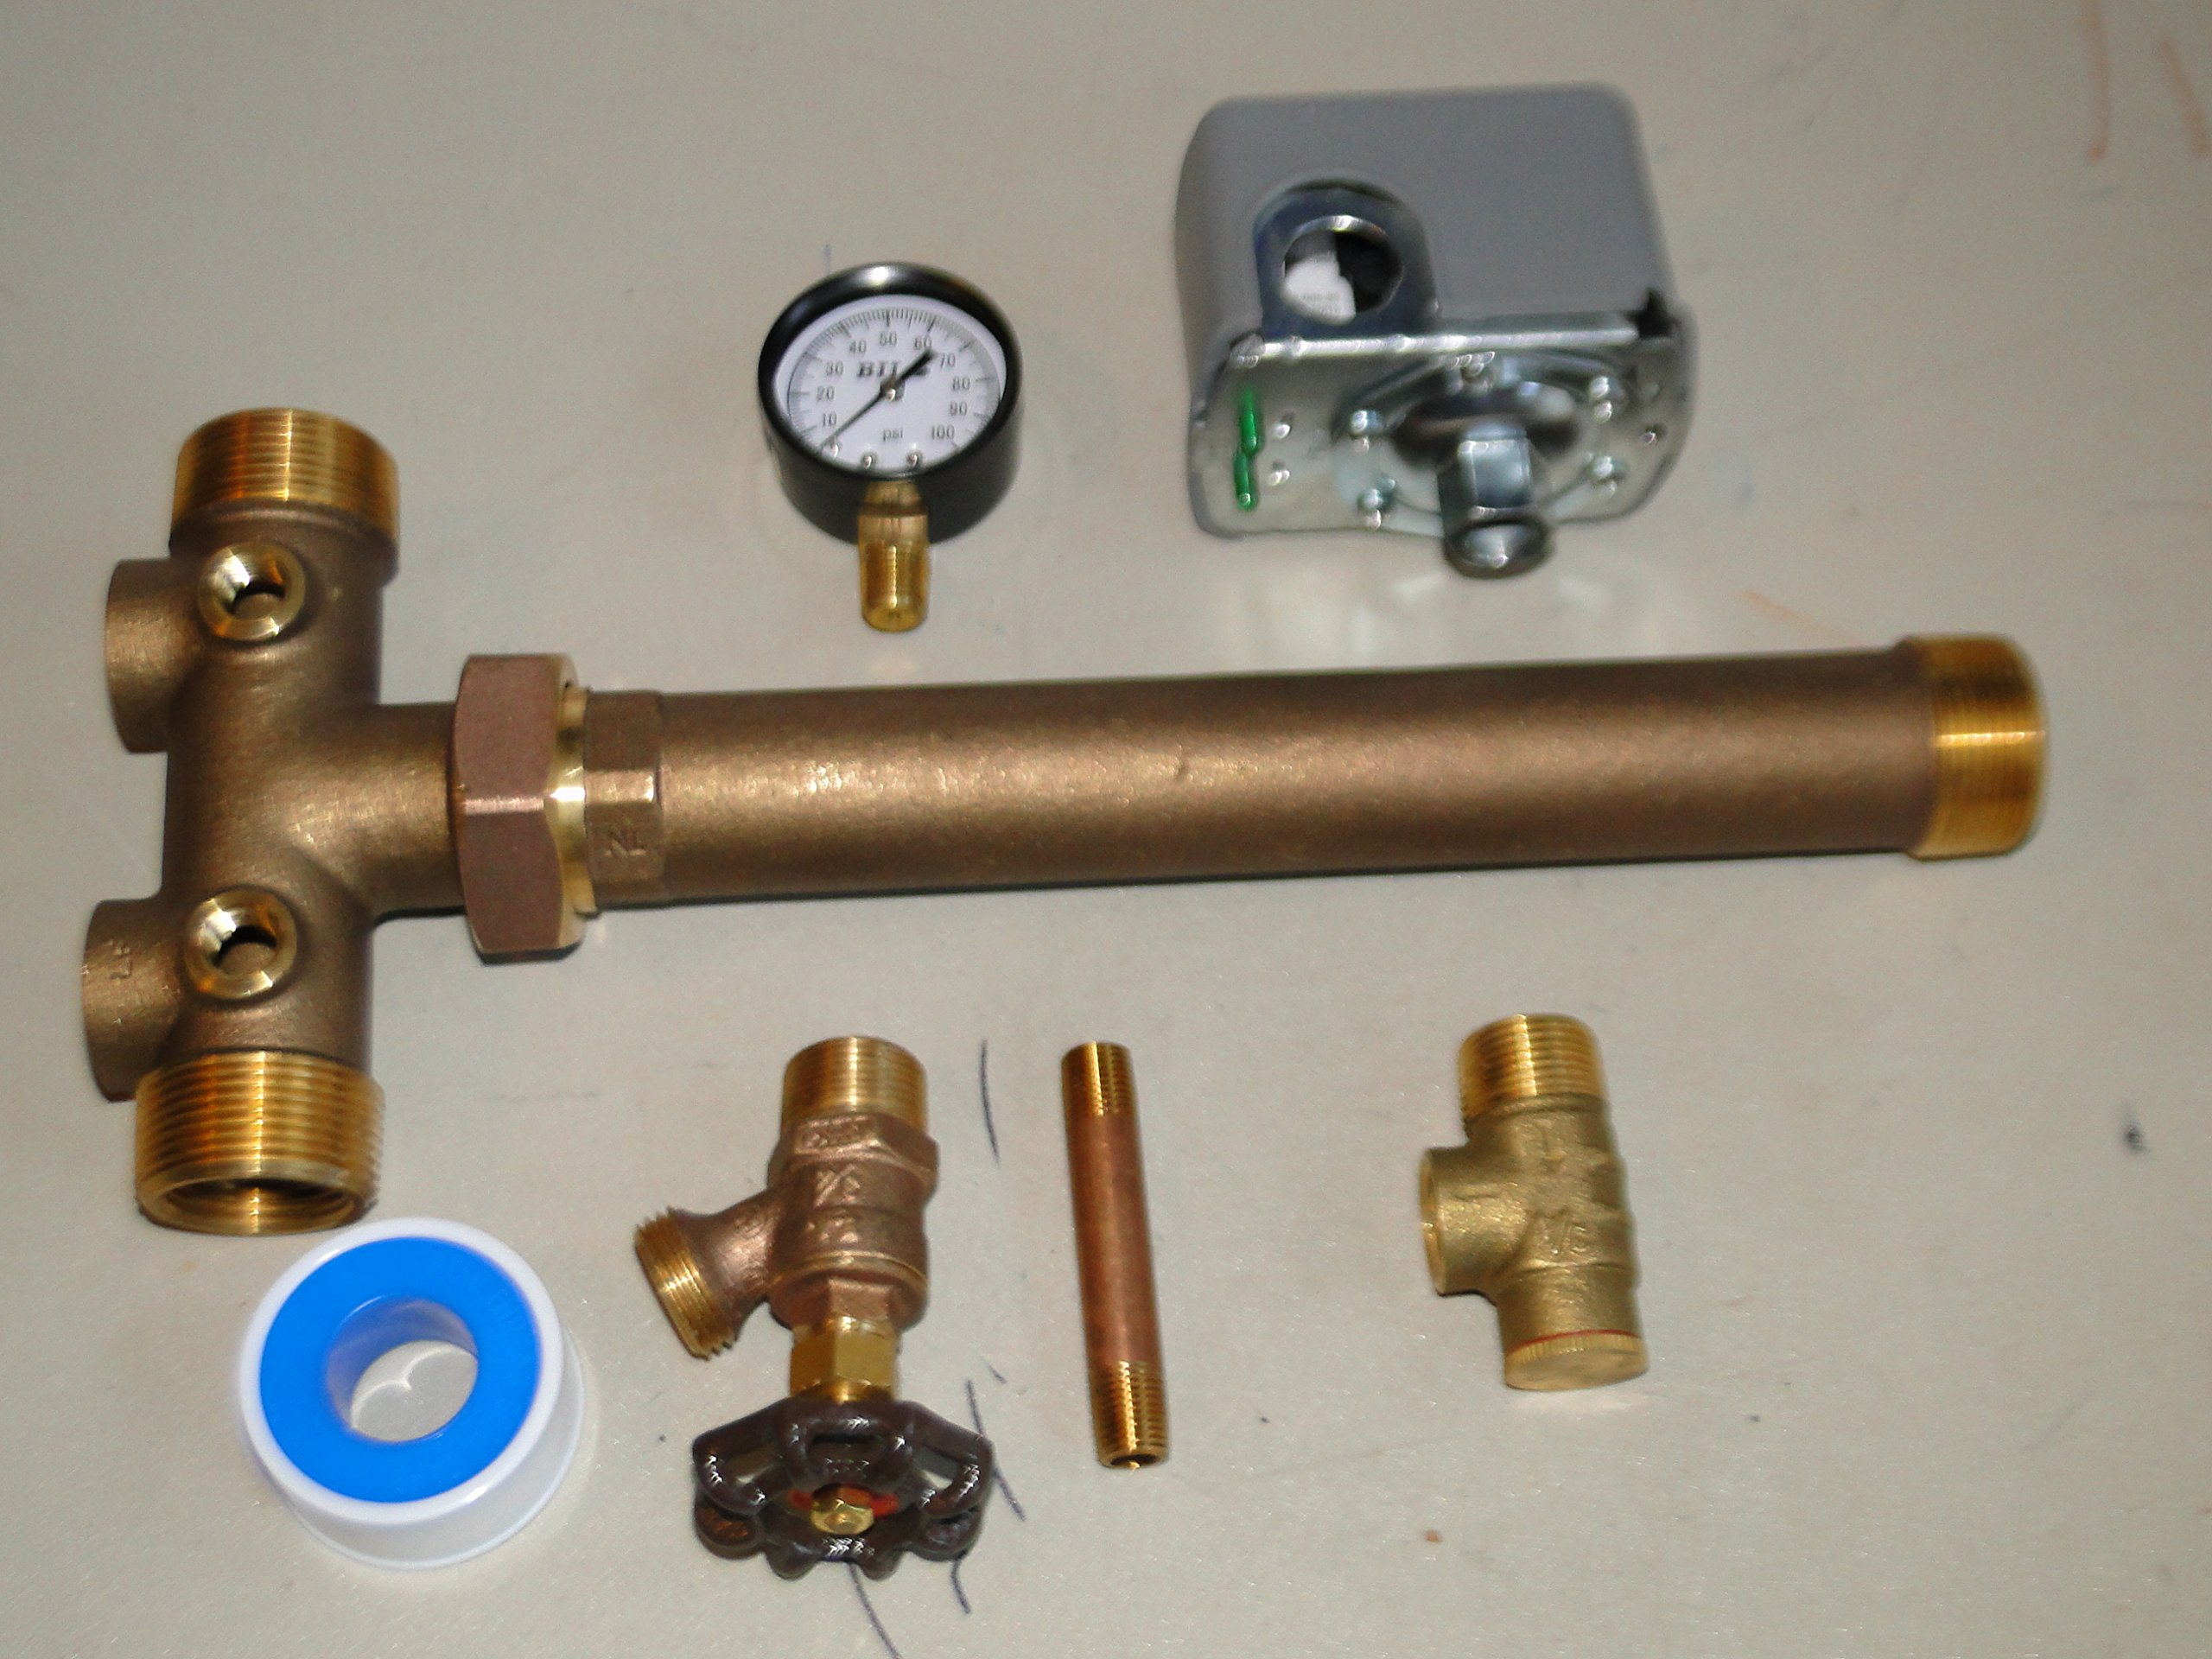 1.25 x 14 Tank Tee Kit with UNION Installation Water Well Pressure Tank SQUARE D 30/50 FSG2 pressure switch NO LEAD